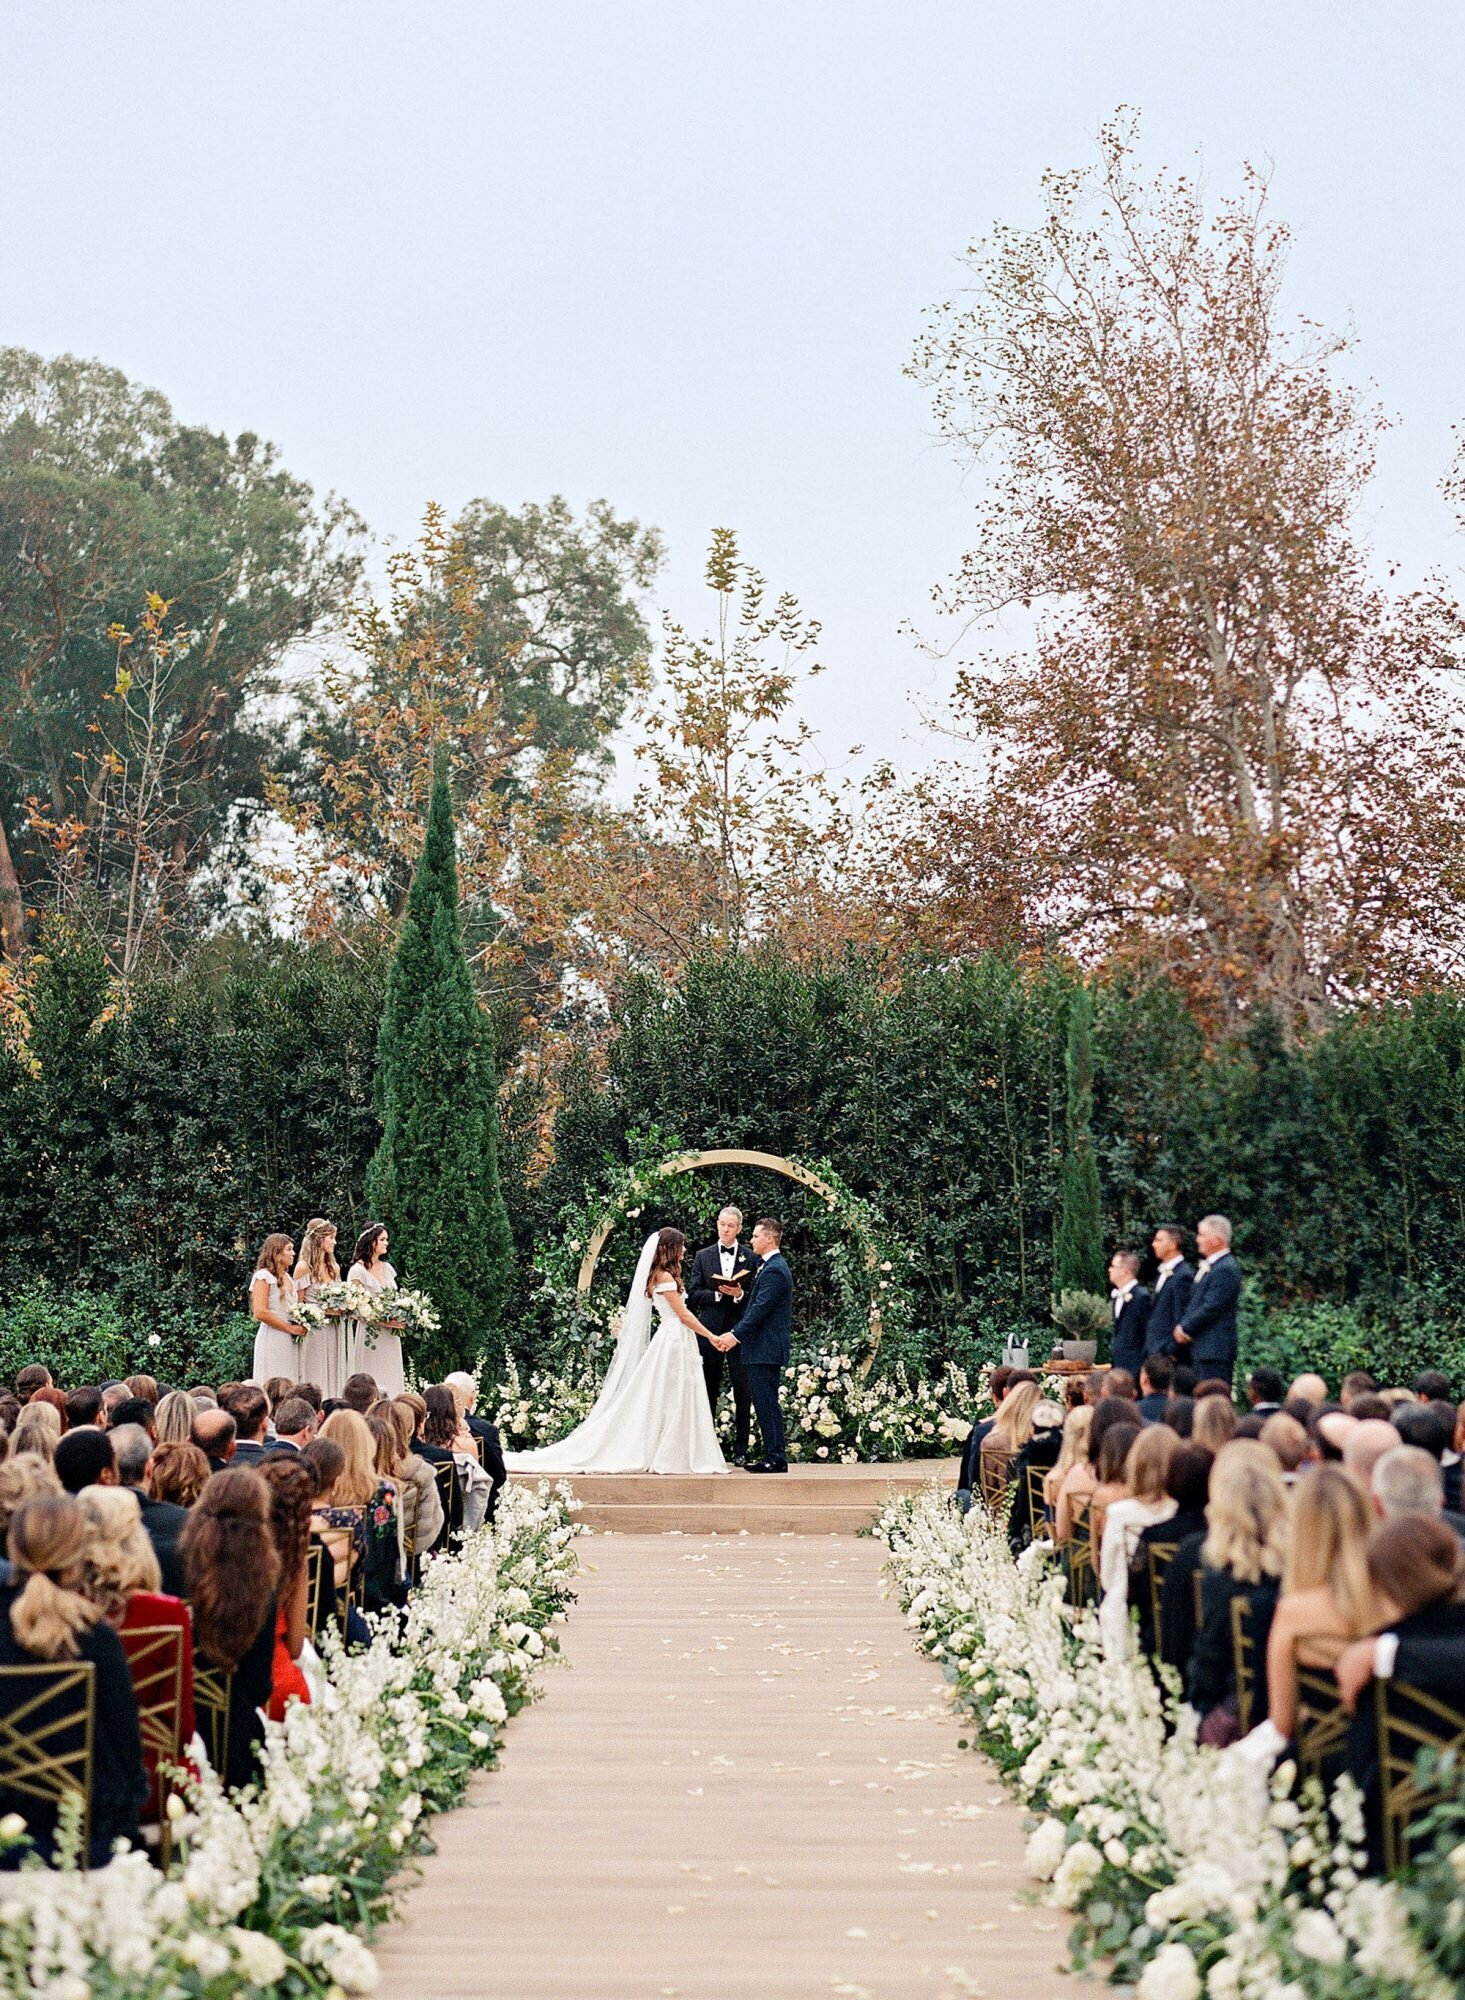 One Couple S Beautiful Winter Wedding In Santa Barbara California Martha Stewart